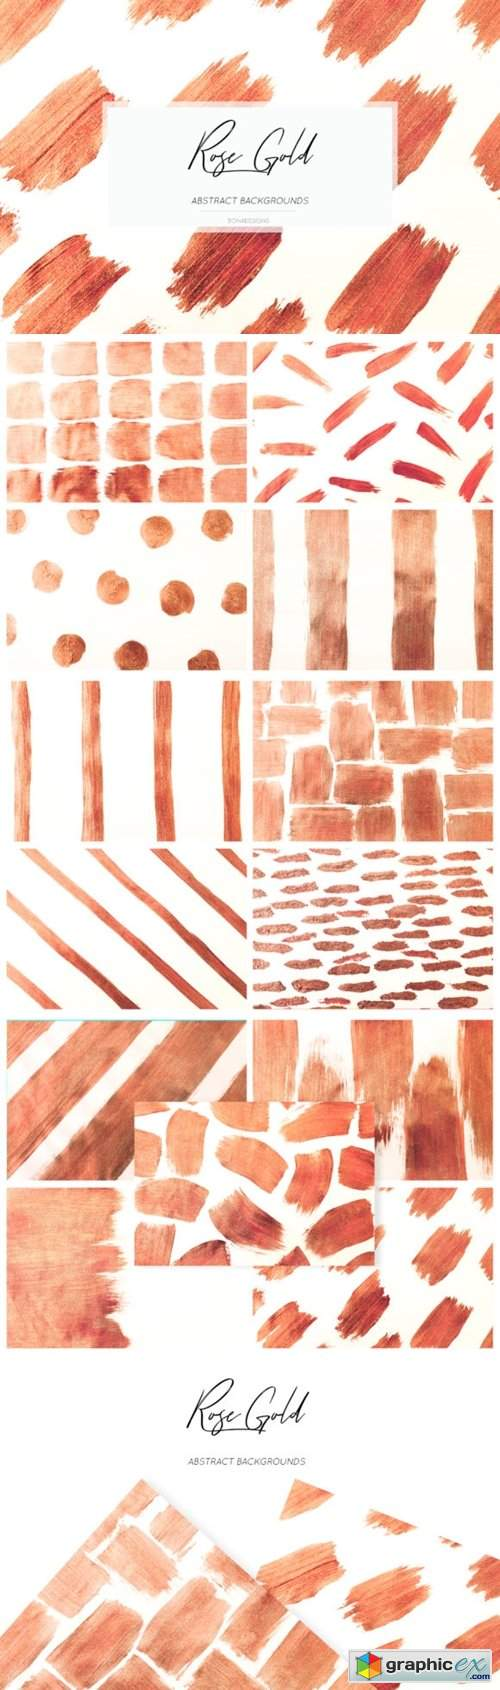 Rose Gold Abstract Backgrounds